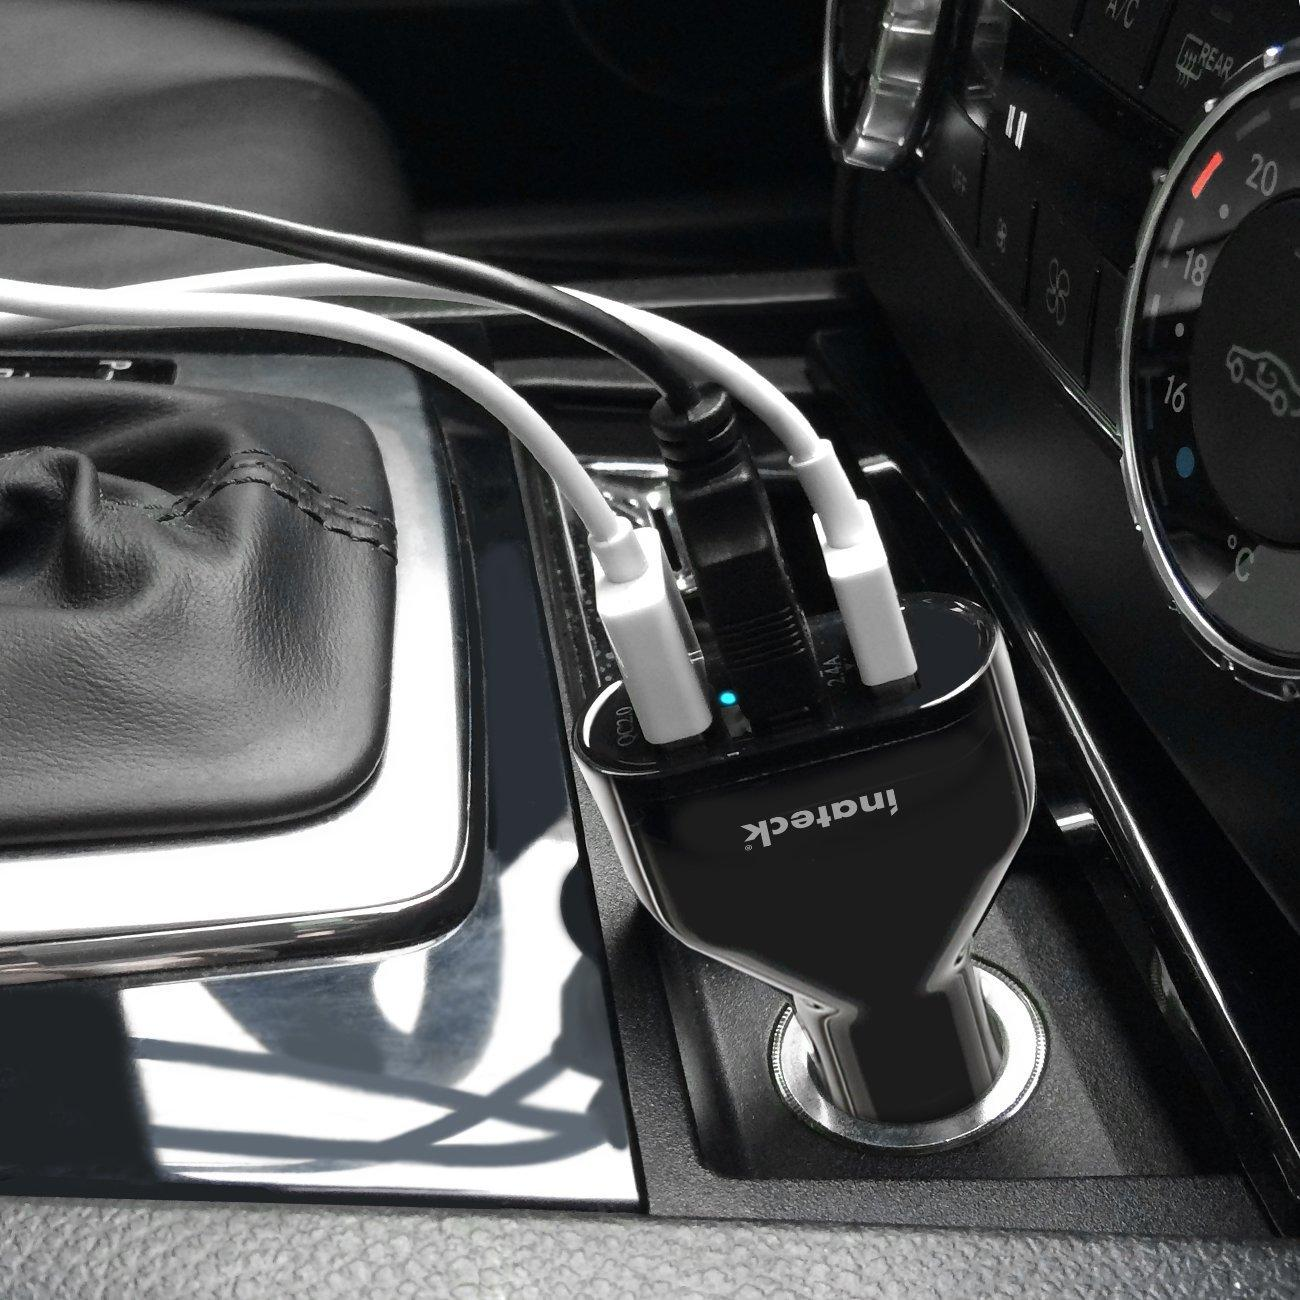 Inateck Quick Charge 30W 3-port USB Car Charger